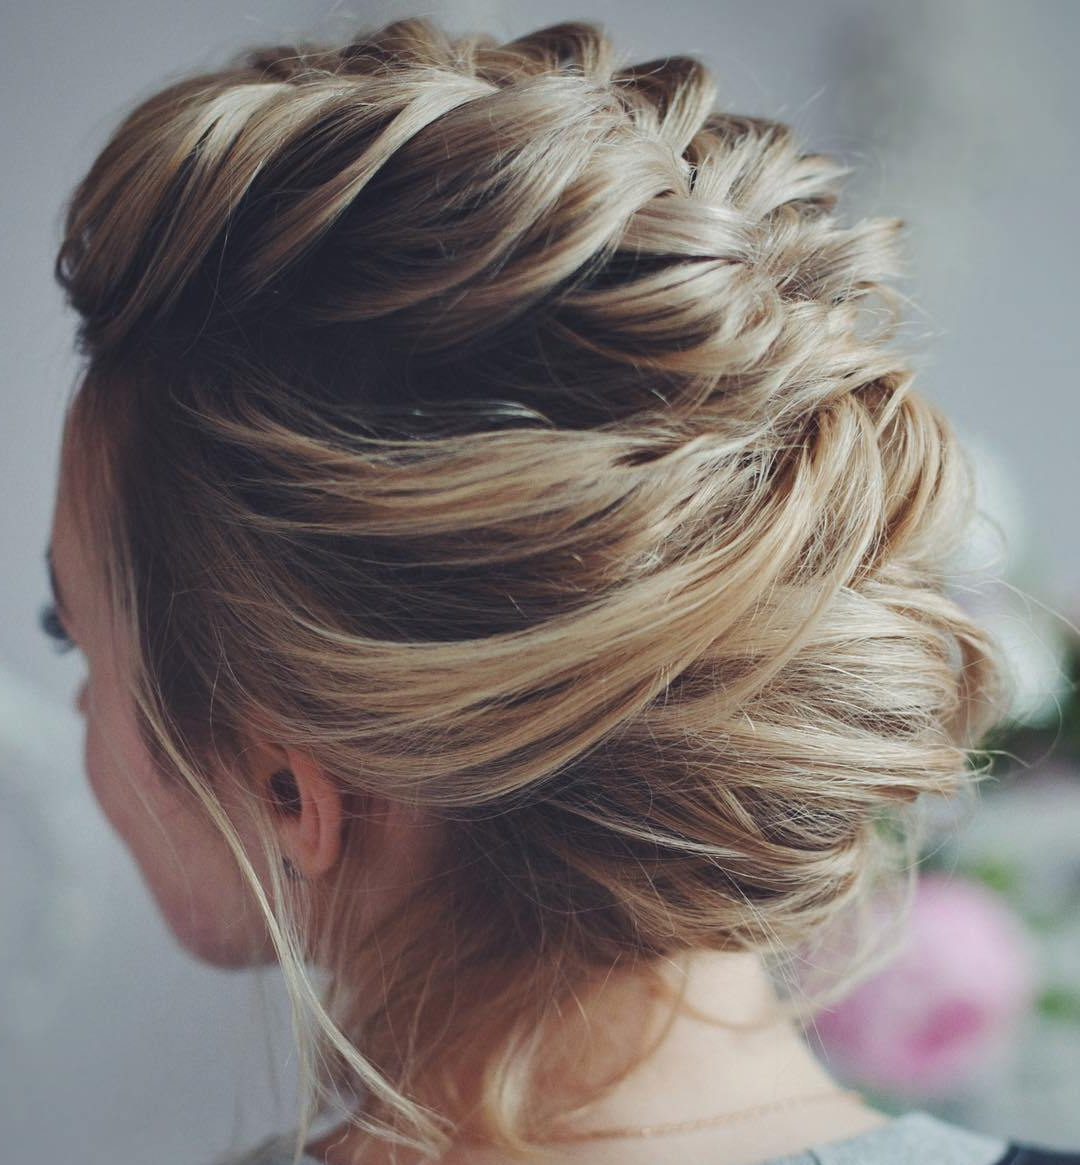 50 Hottest Prom Hairstyles For Short Hair With Hairstyles For Short Hair For Graduation (View 8 of 25)